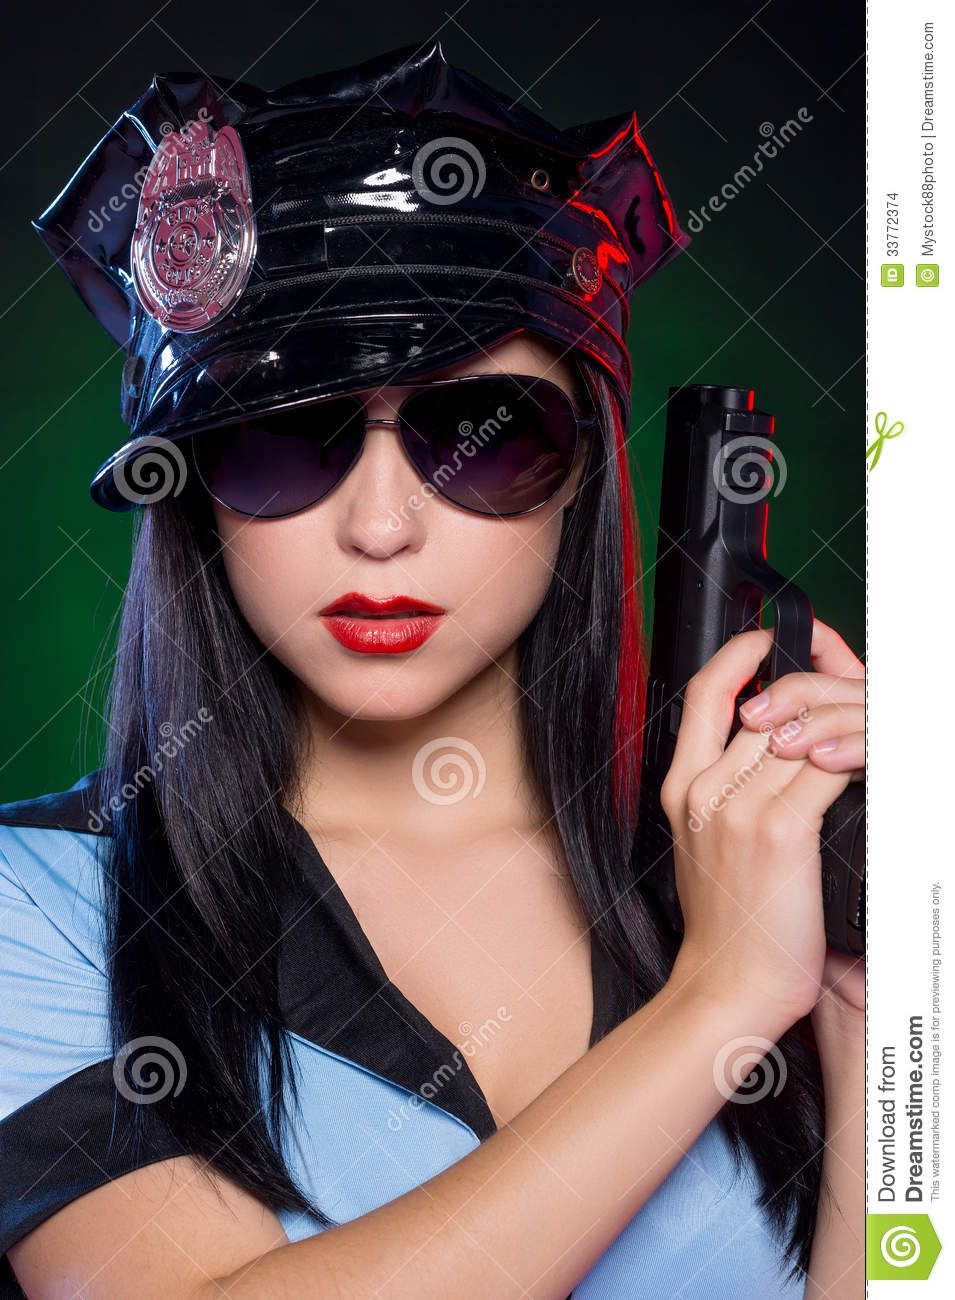 Policewoman Stock Photo Image Of Looking, Glasses, Shot - 33772374